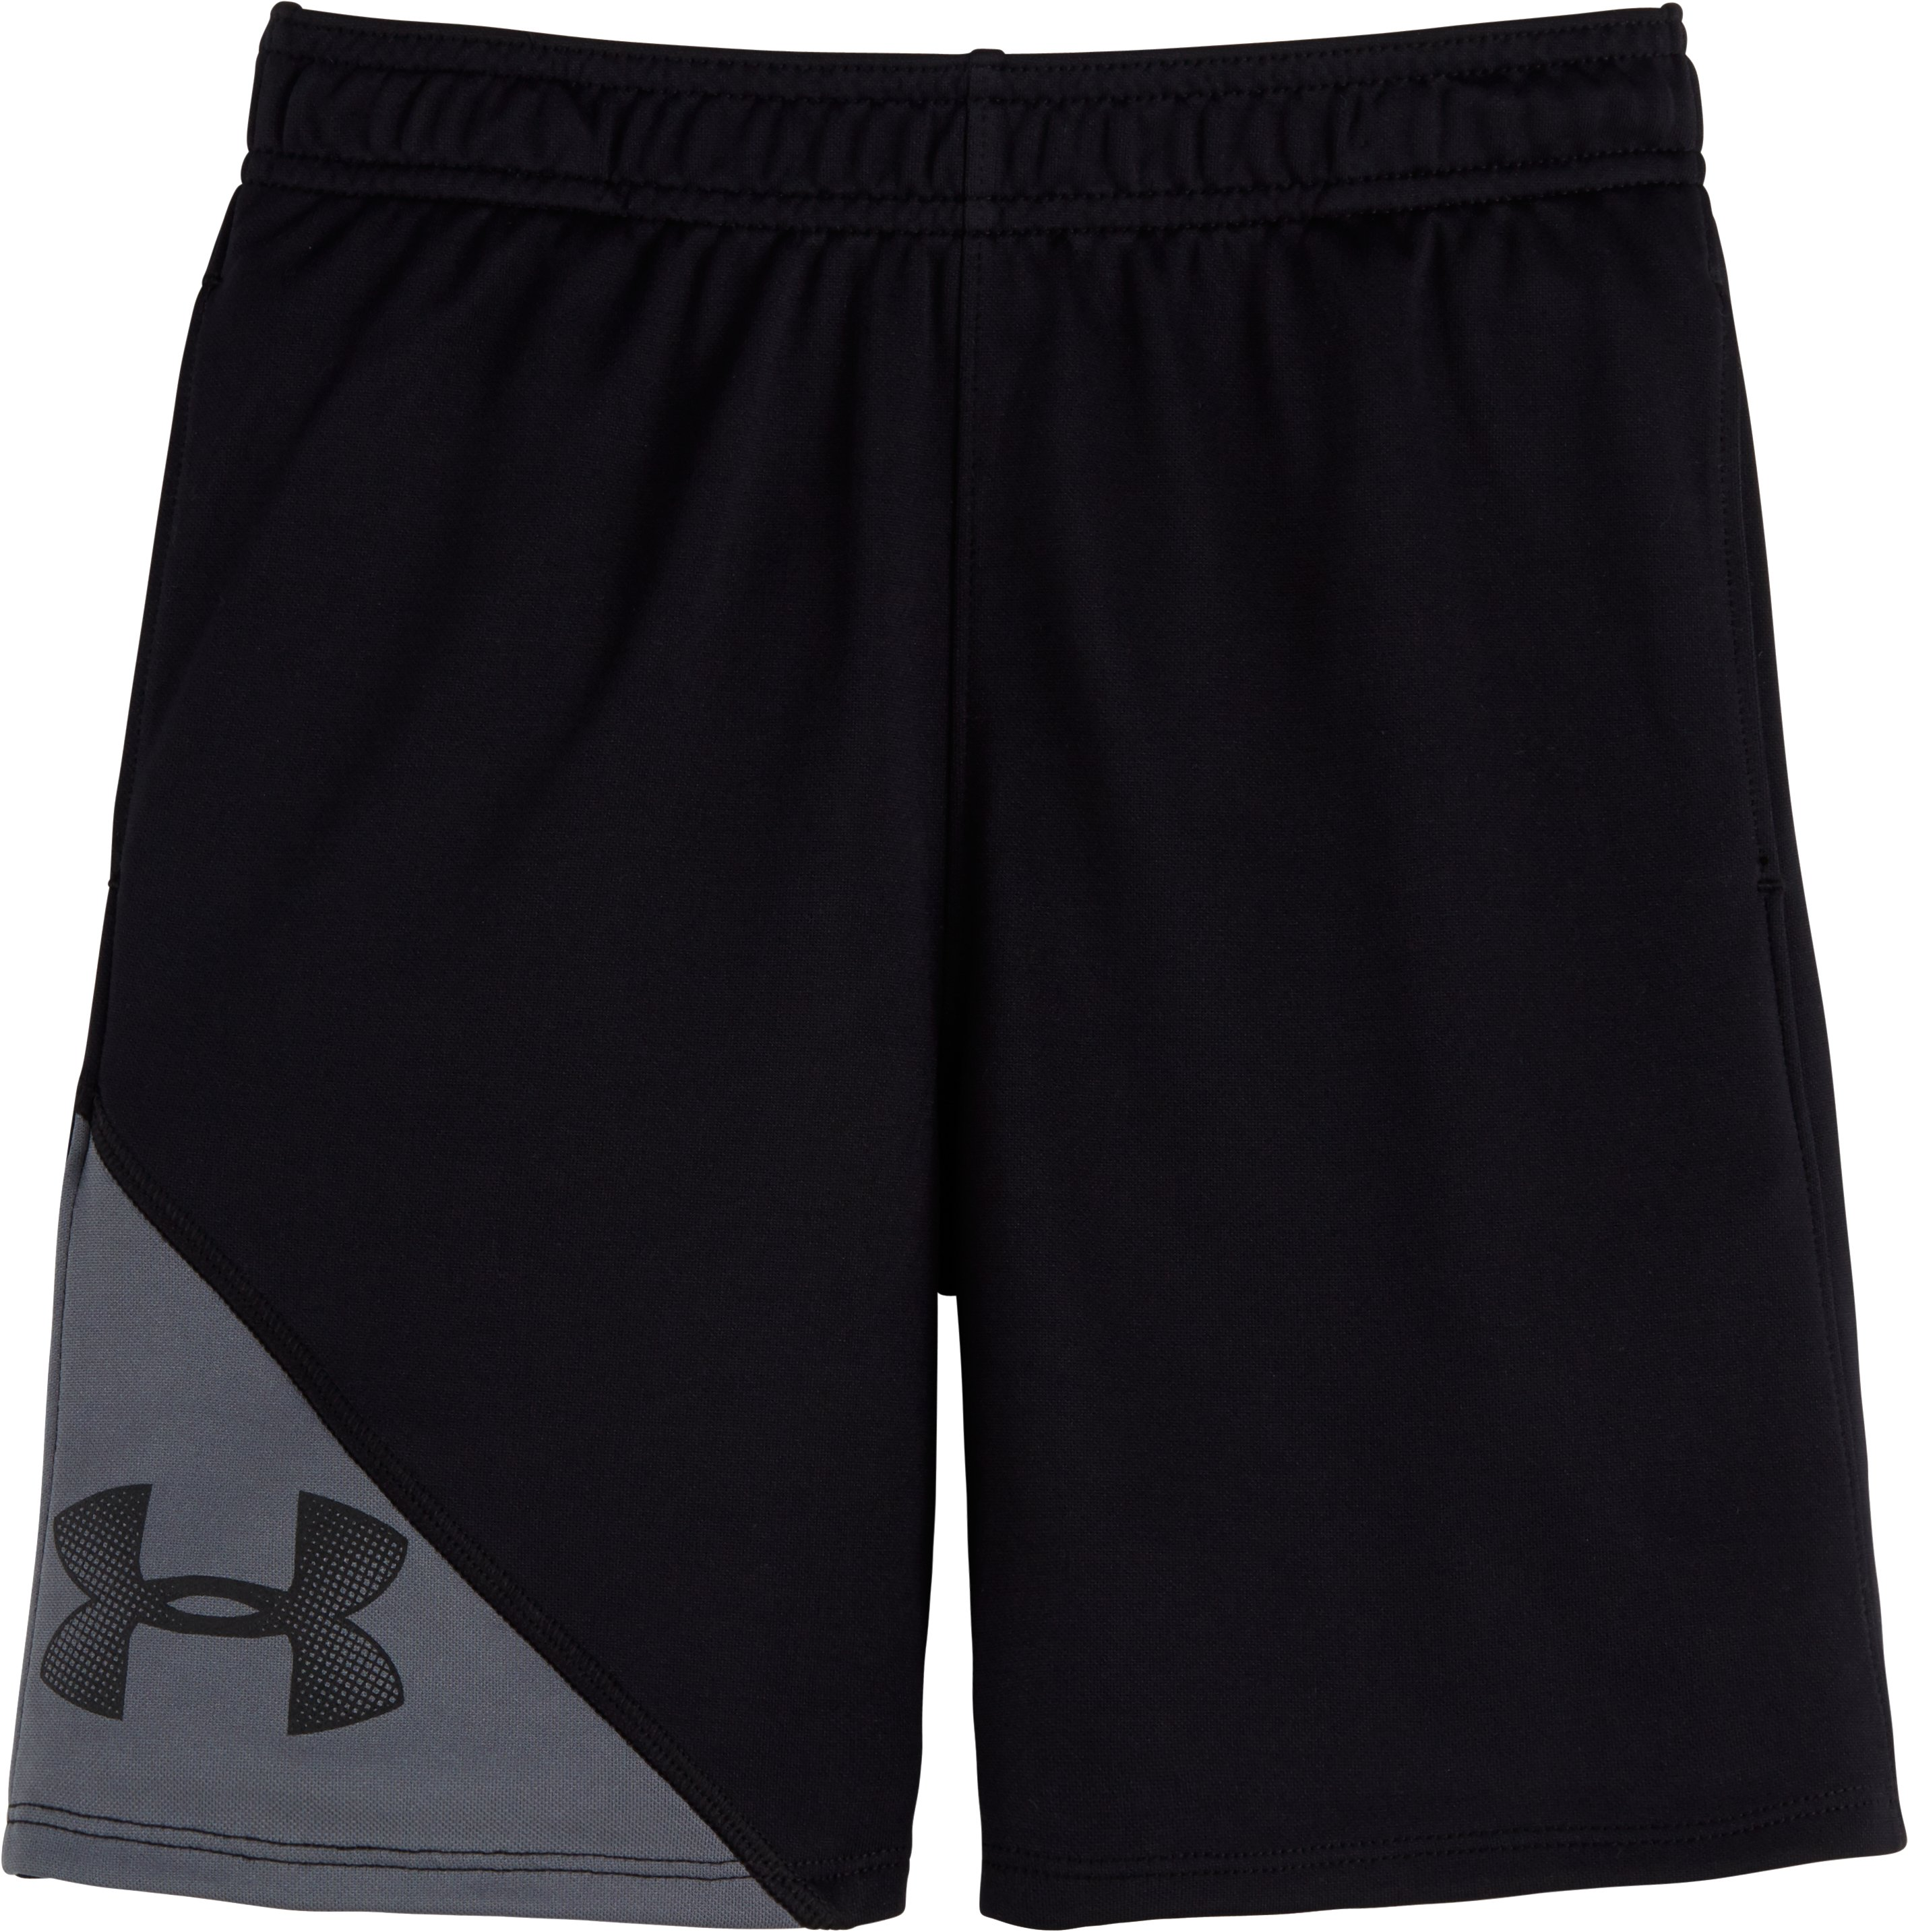 Boys' Pre-School UA Prototype Shorts, Black